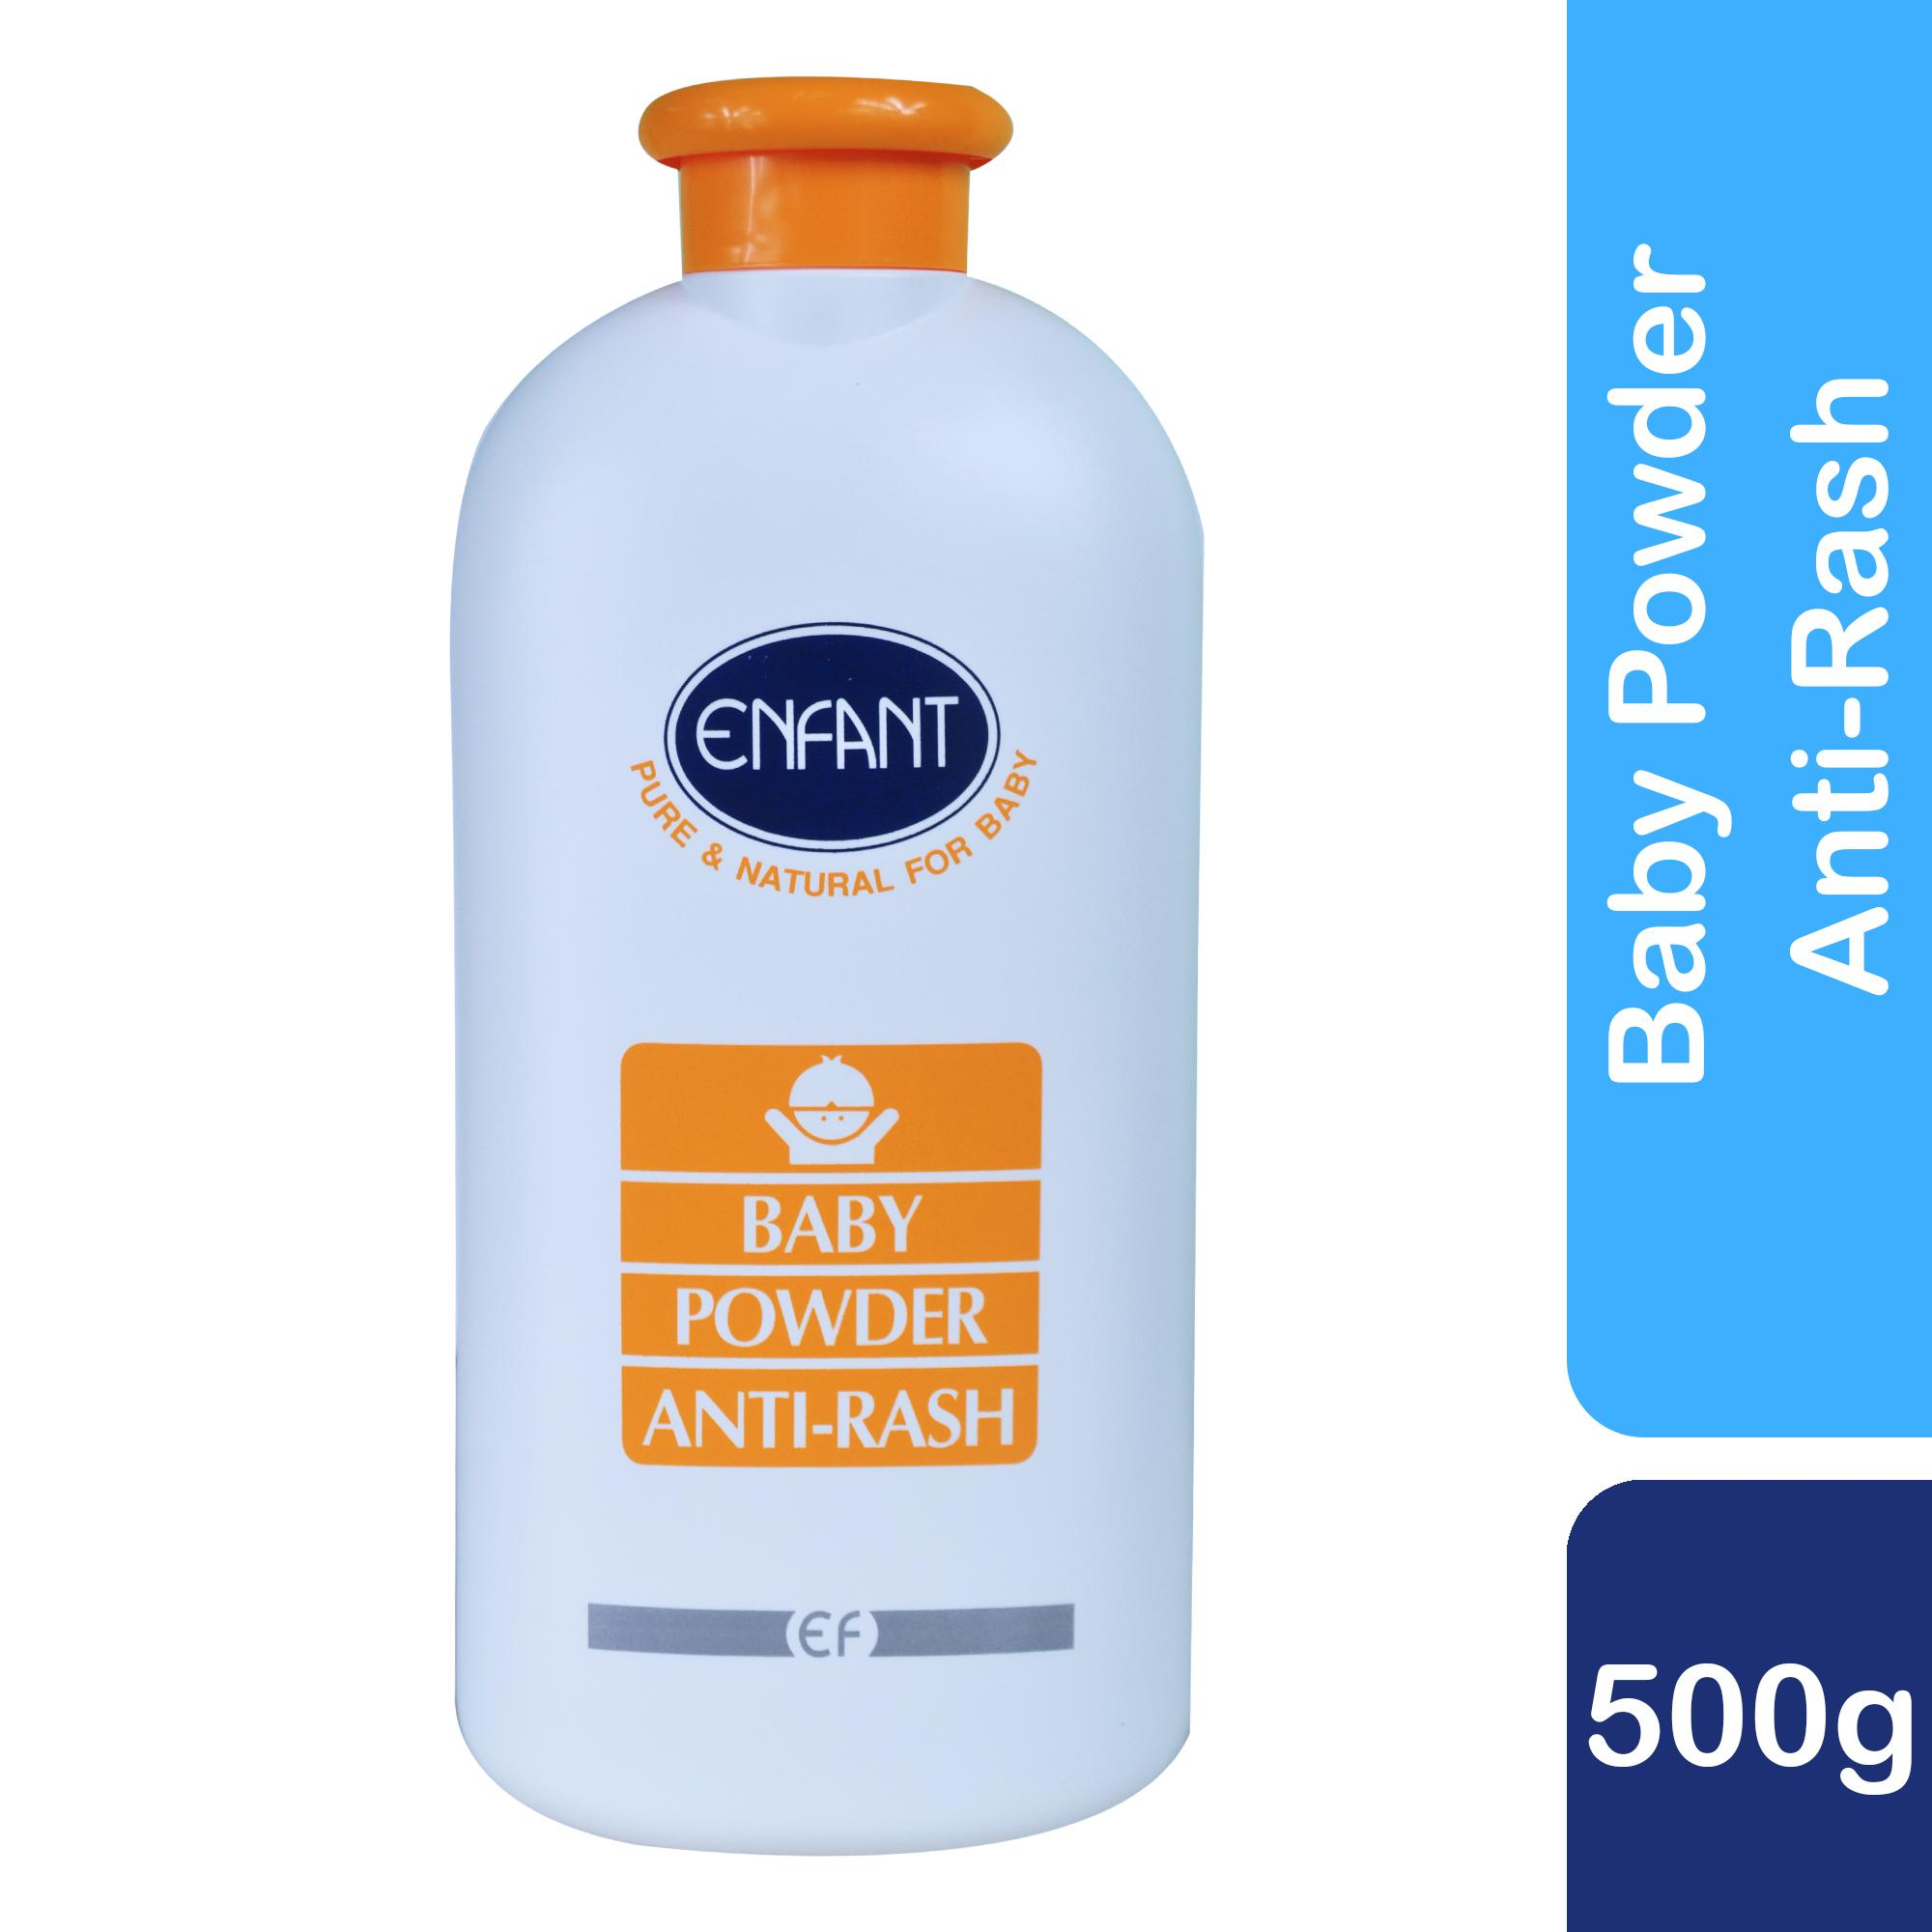 Enfant Baby Anti Rash Powder 500 Grams By Enfant Specialty Shop.